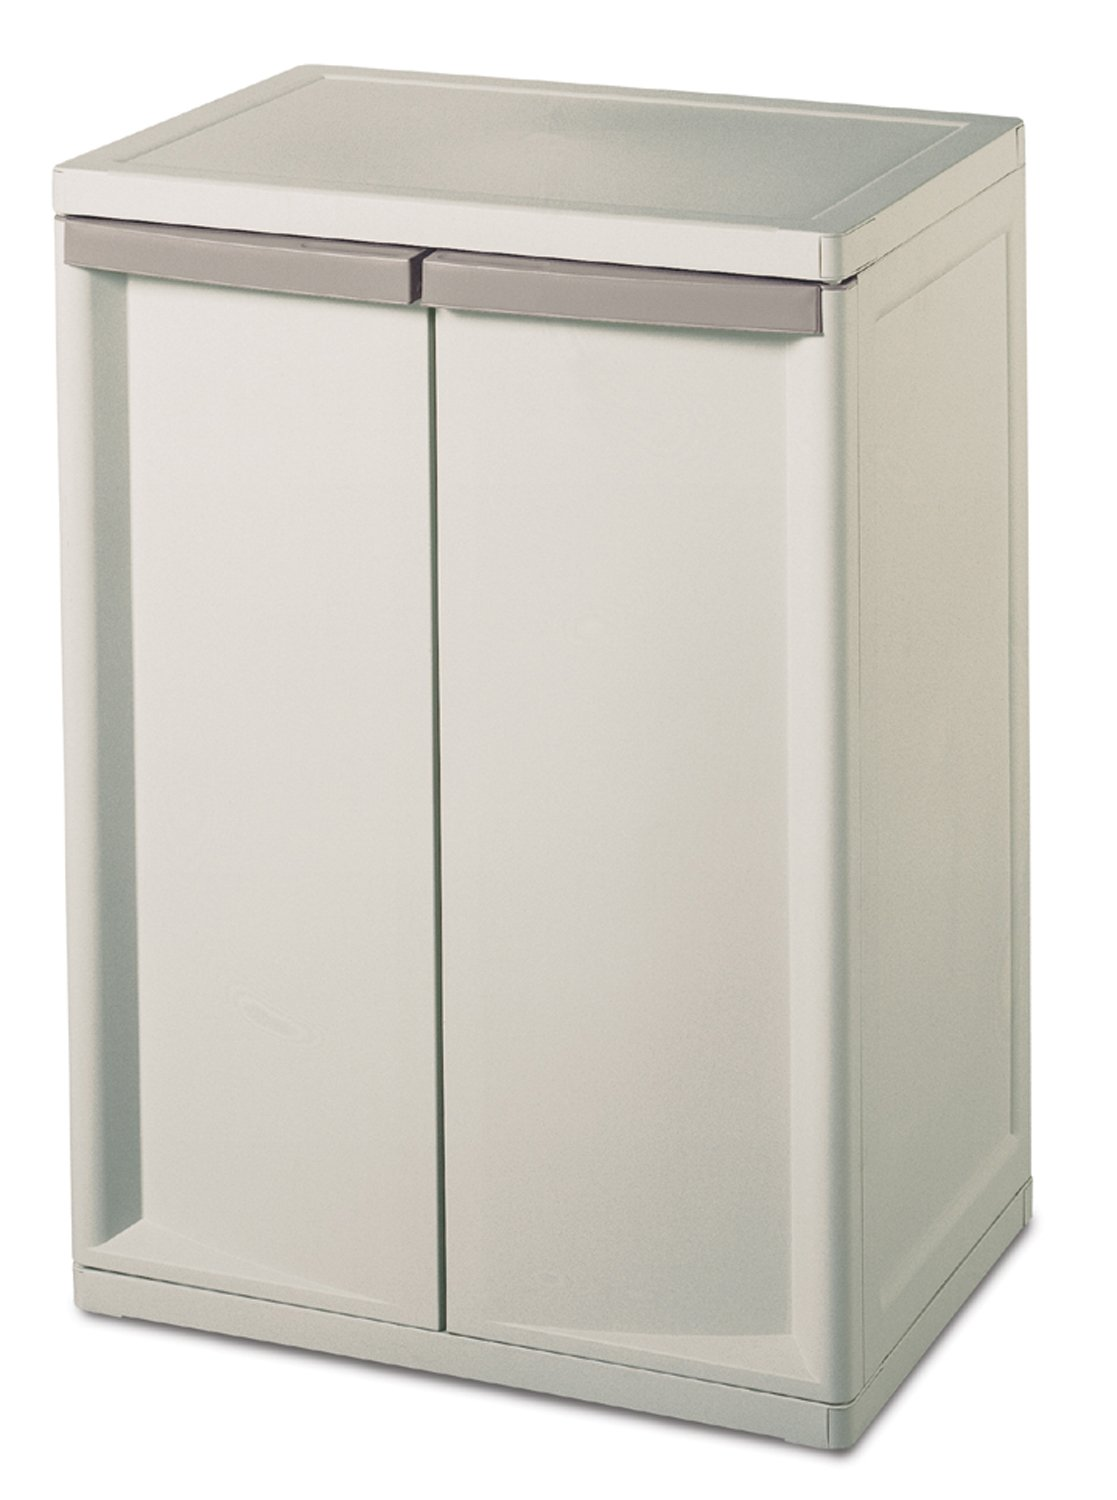 Sterilite 01408501 2-Shelf Cabinet with Putty Handles, Platinum